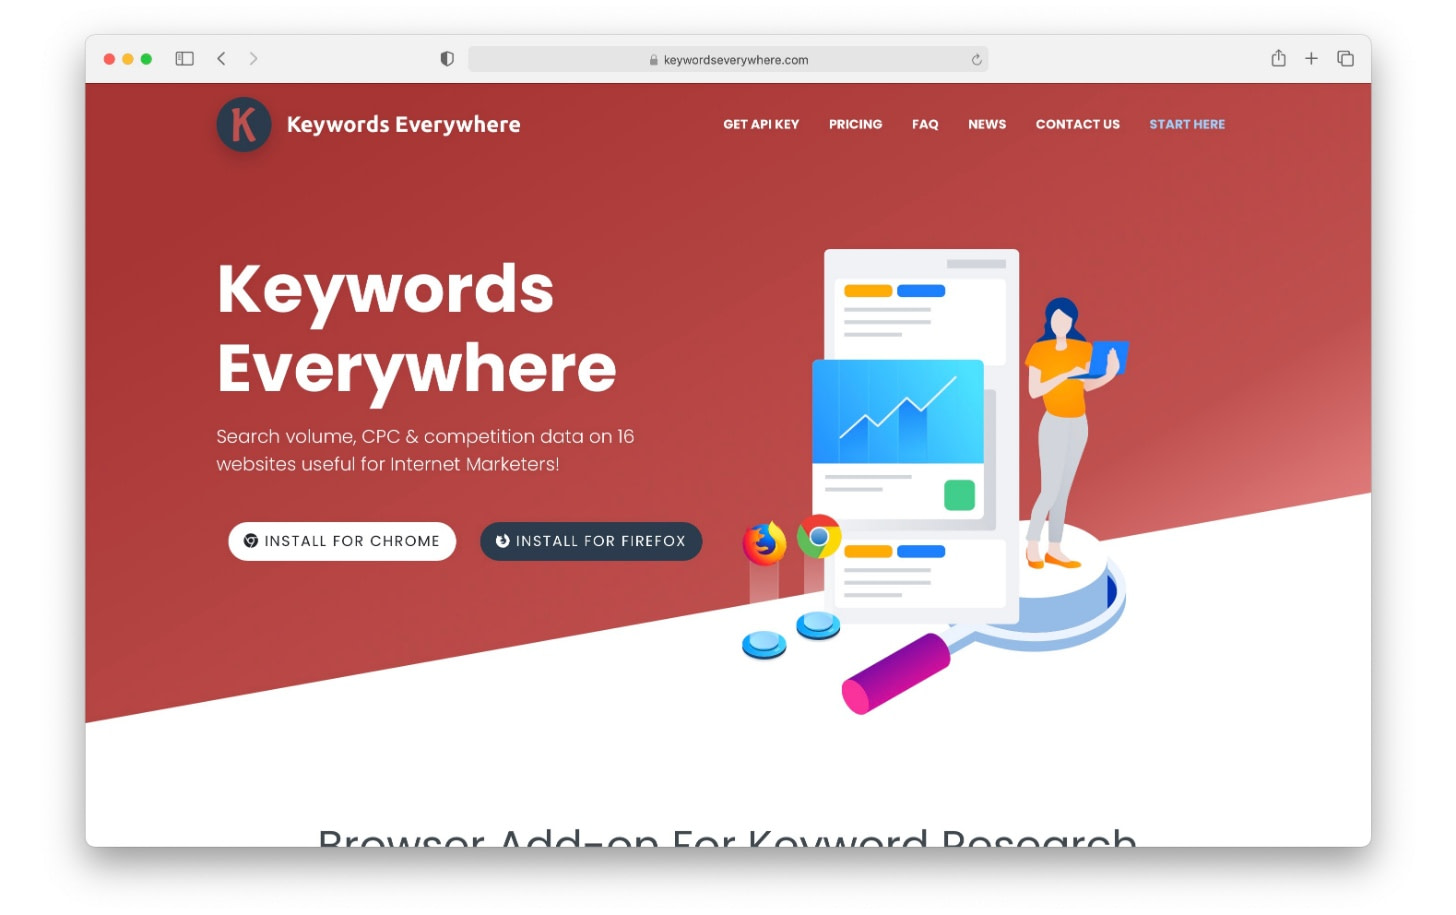 Keywords Everywhere is a browser extension